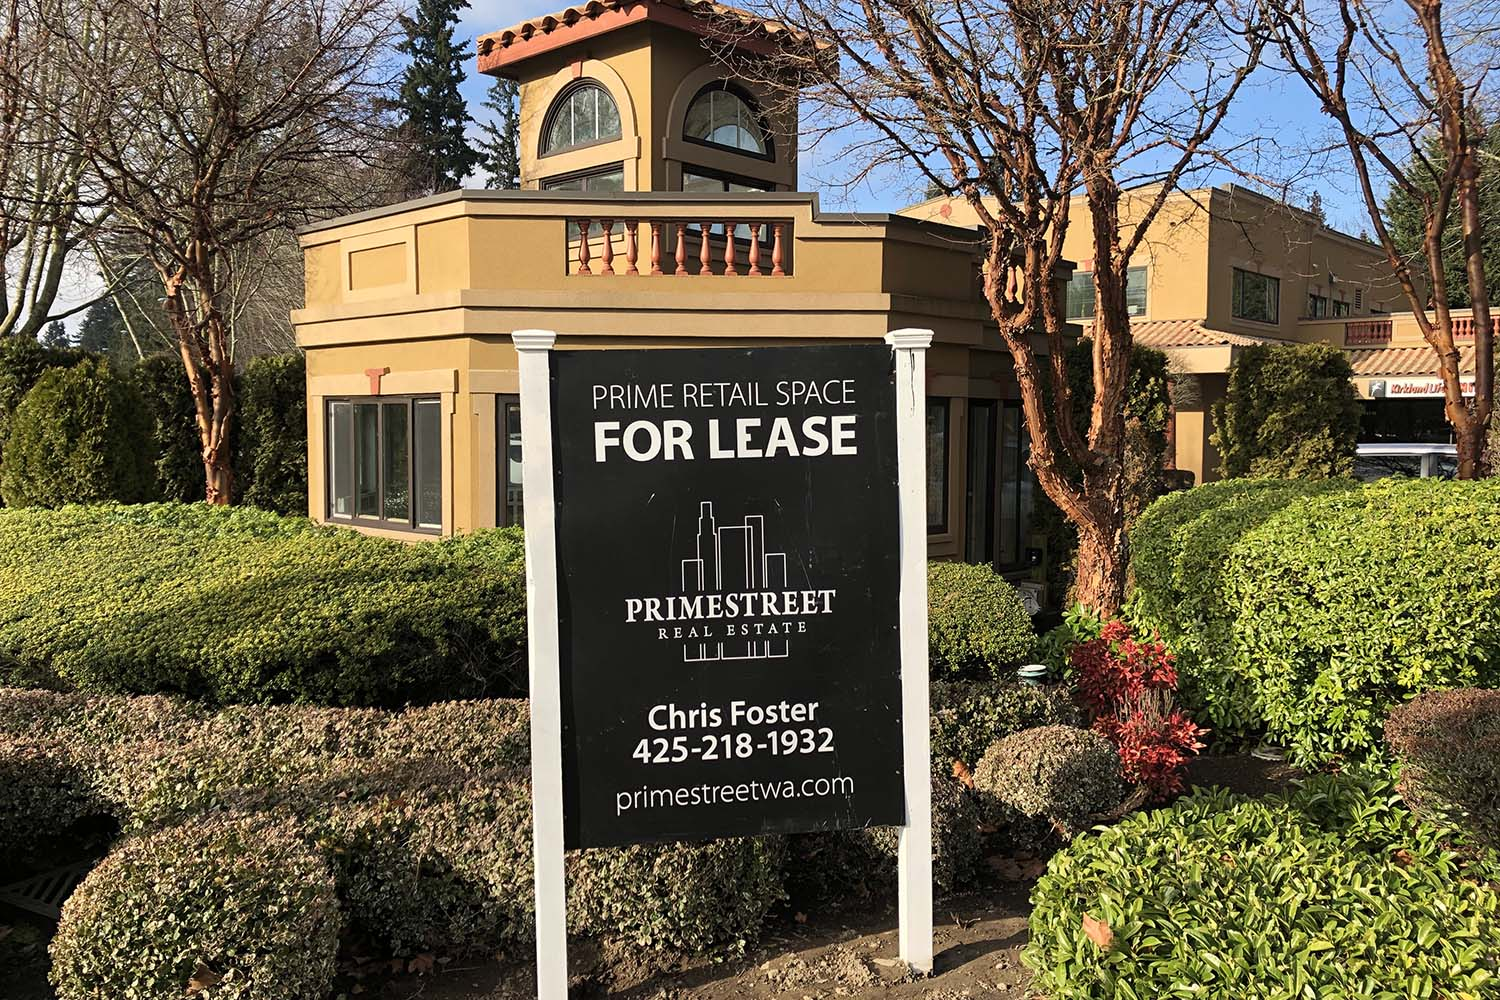 More Than Just a Property Sign